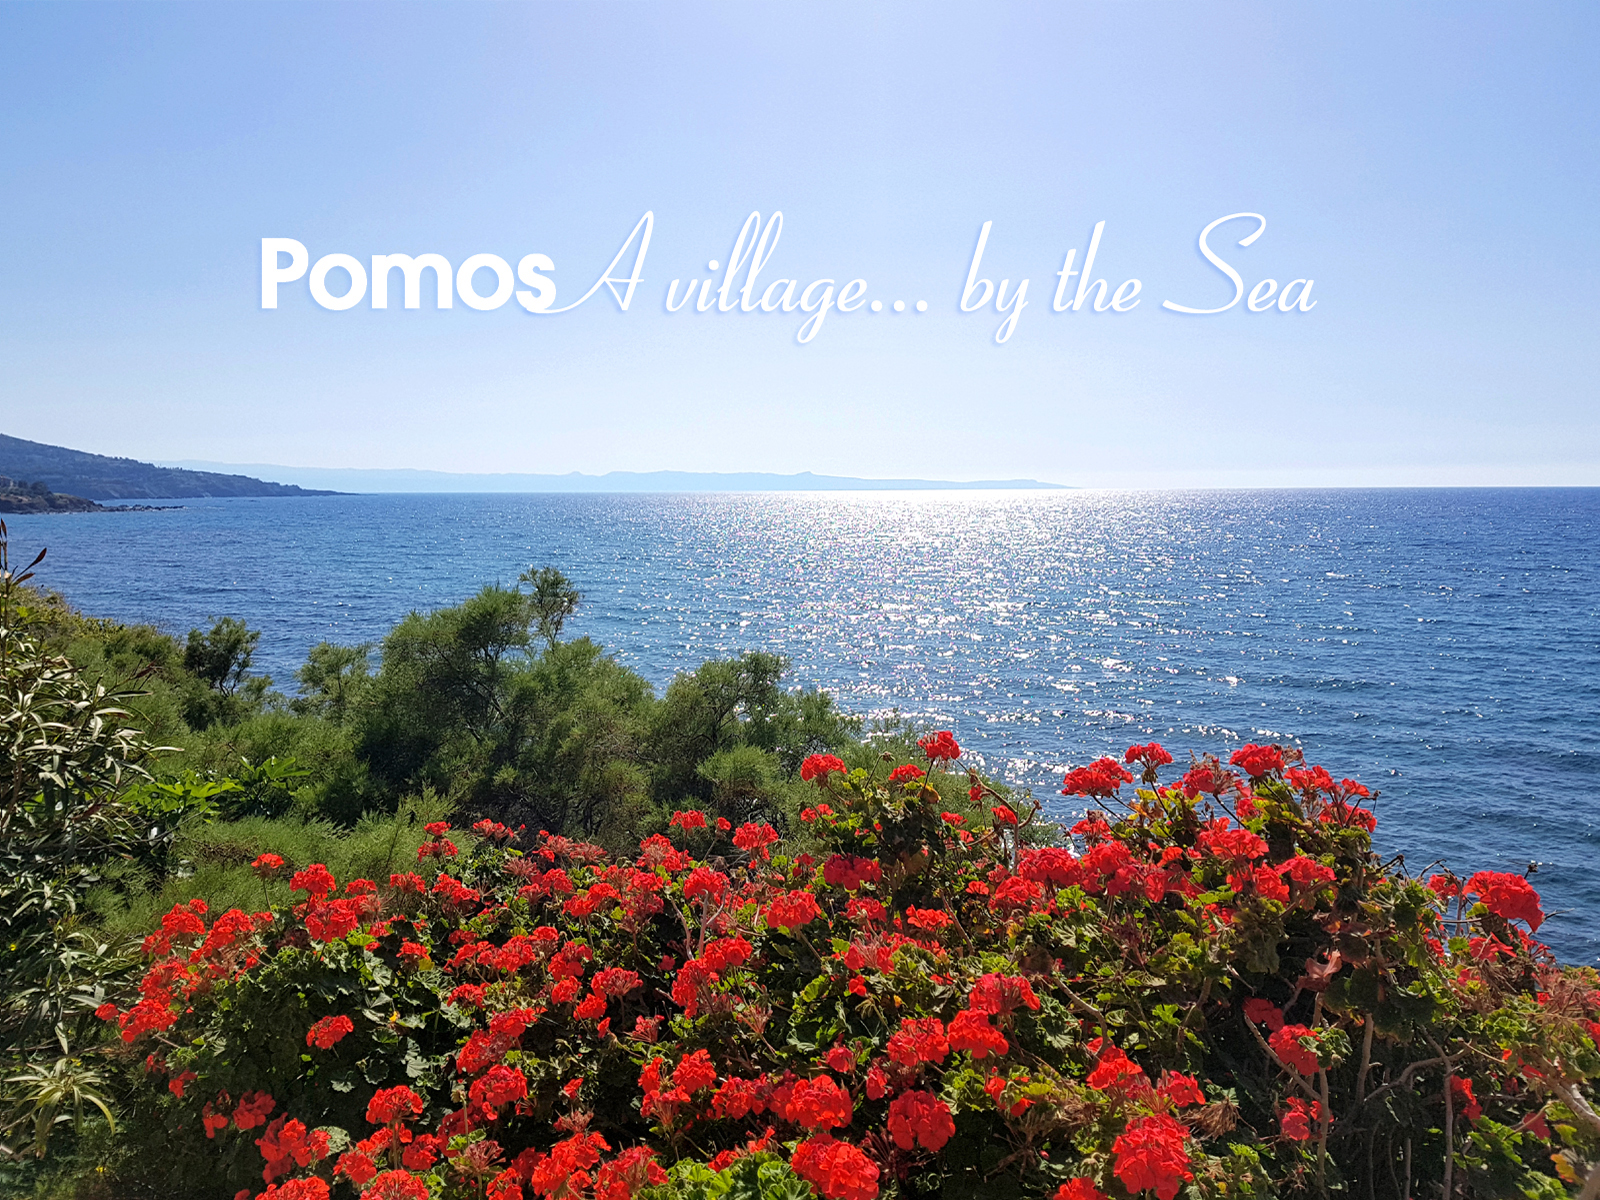 POMOS... A VILLAGE BY THE SEA